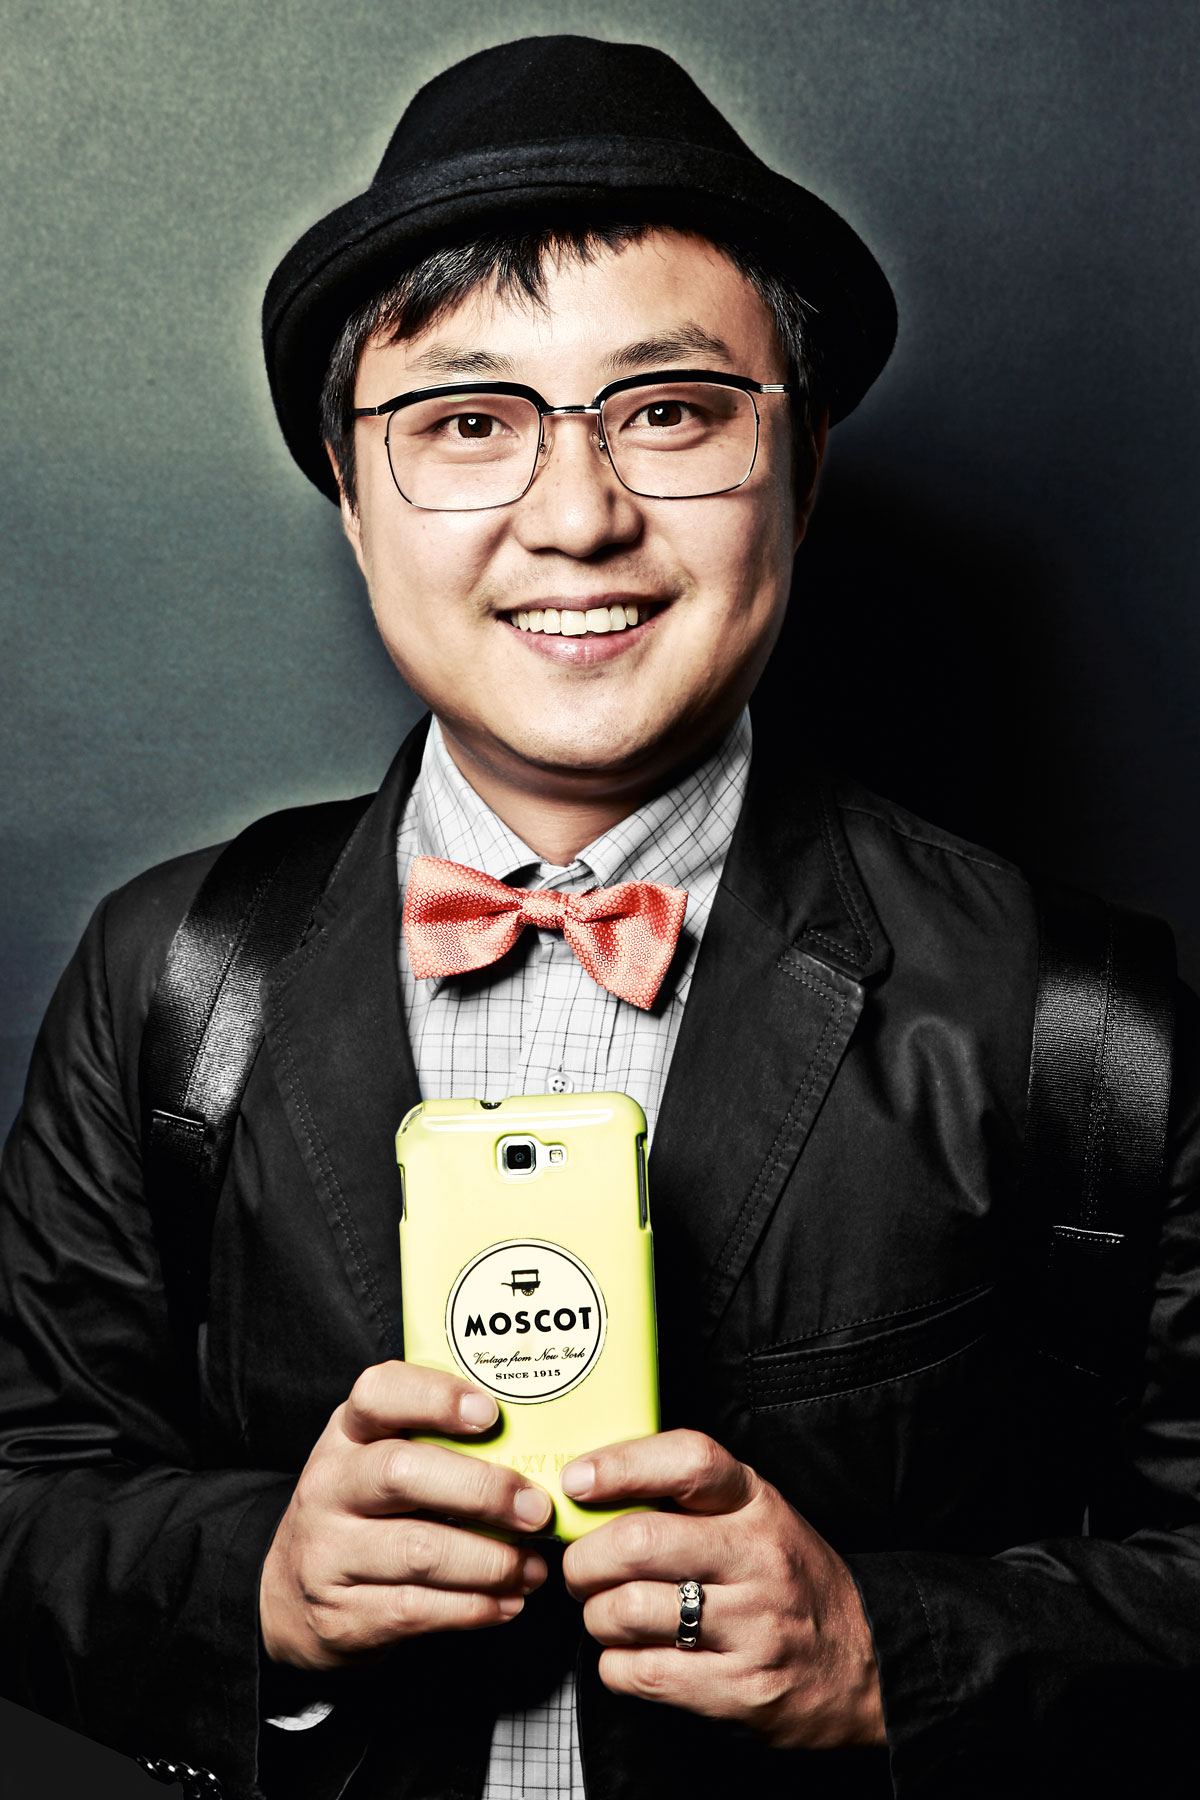 booth_Andy,-Korea-_-Moscot